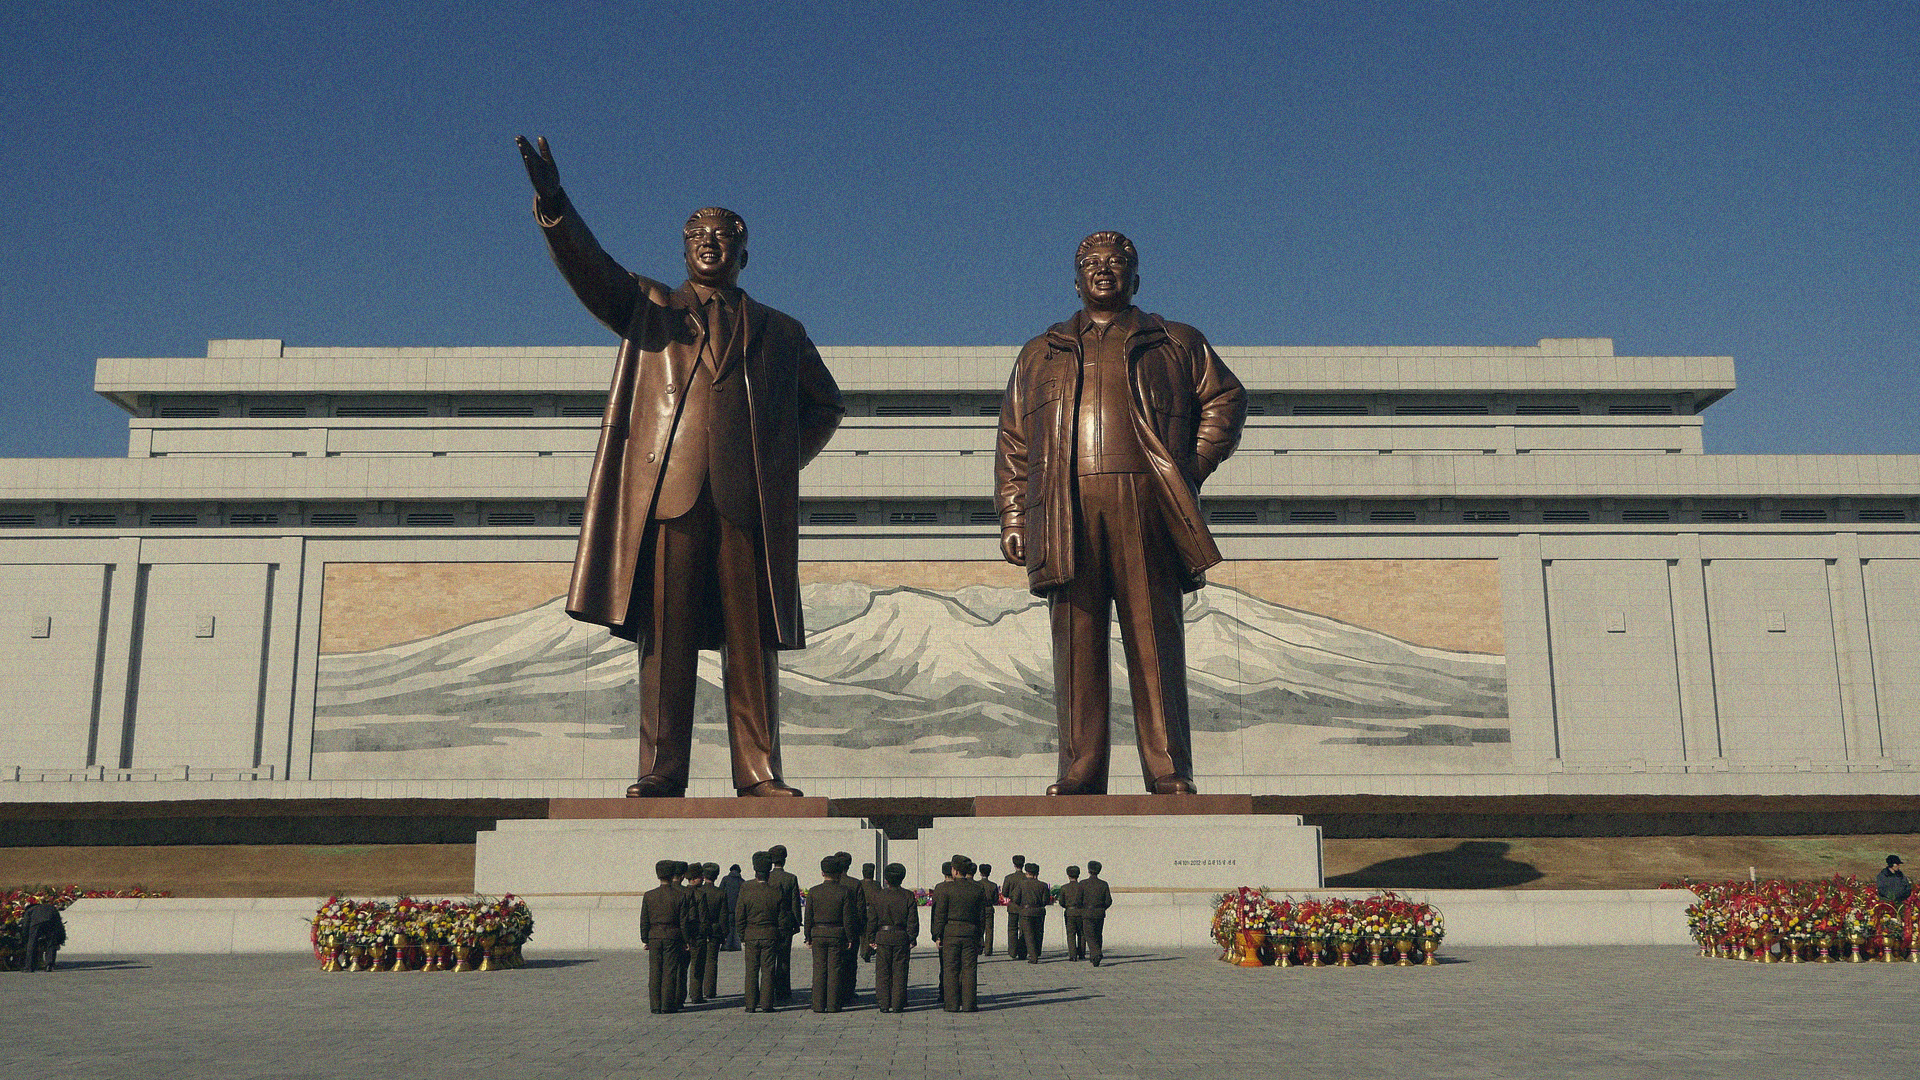 Hermit Kingdom - A detailed profile on North Korea aimed at attracting travellers looking for a unlikely, unique destination.+ publication design+ photo editing